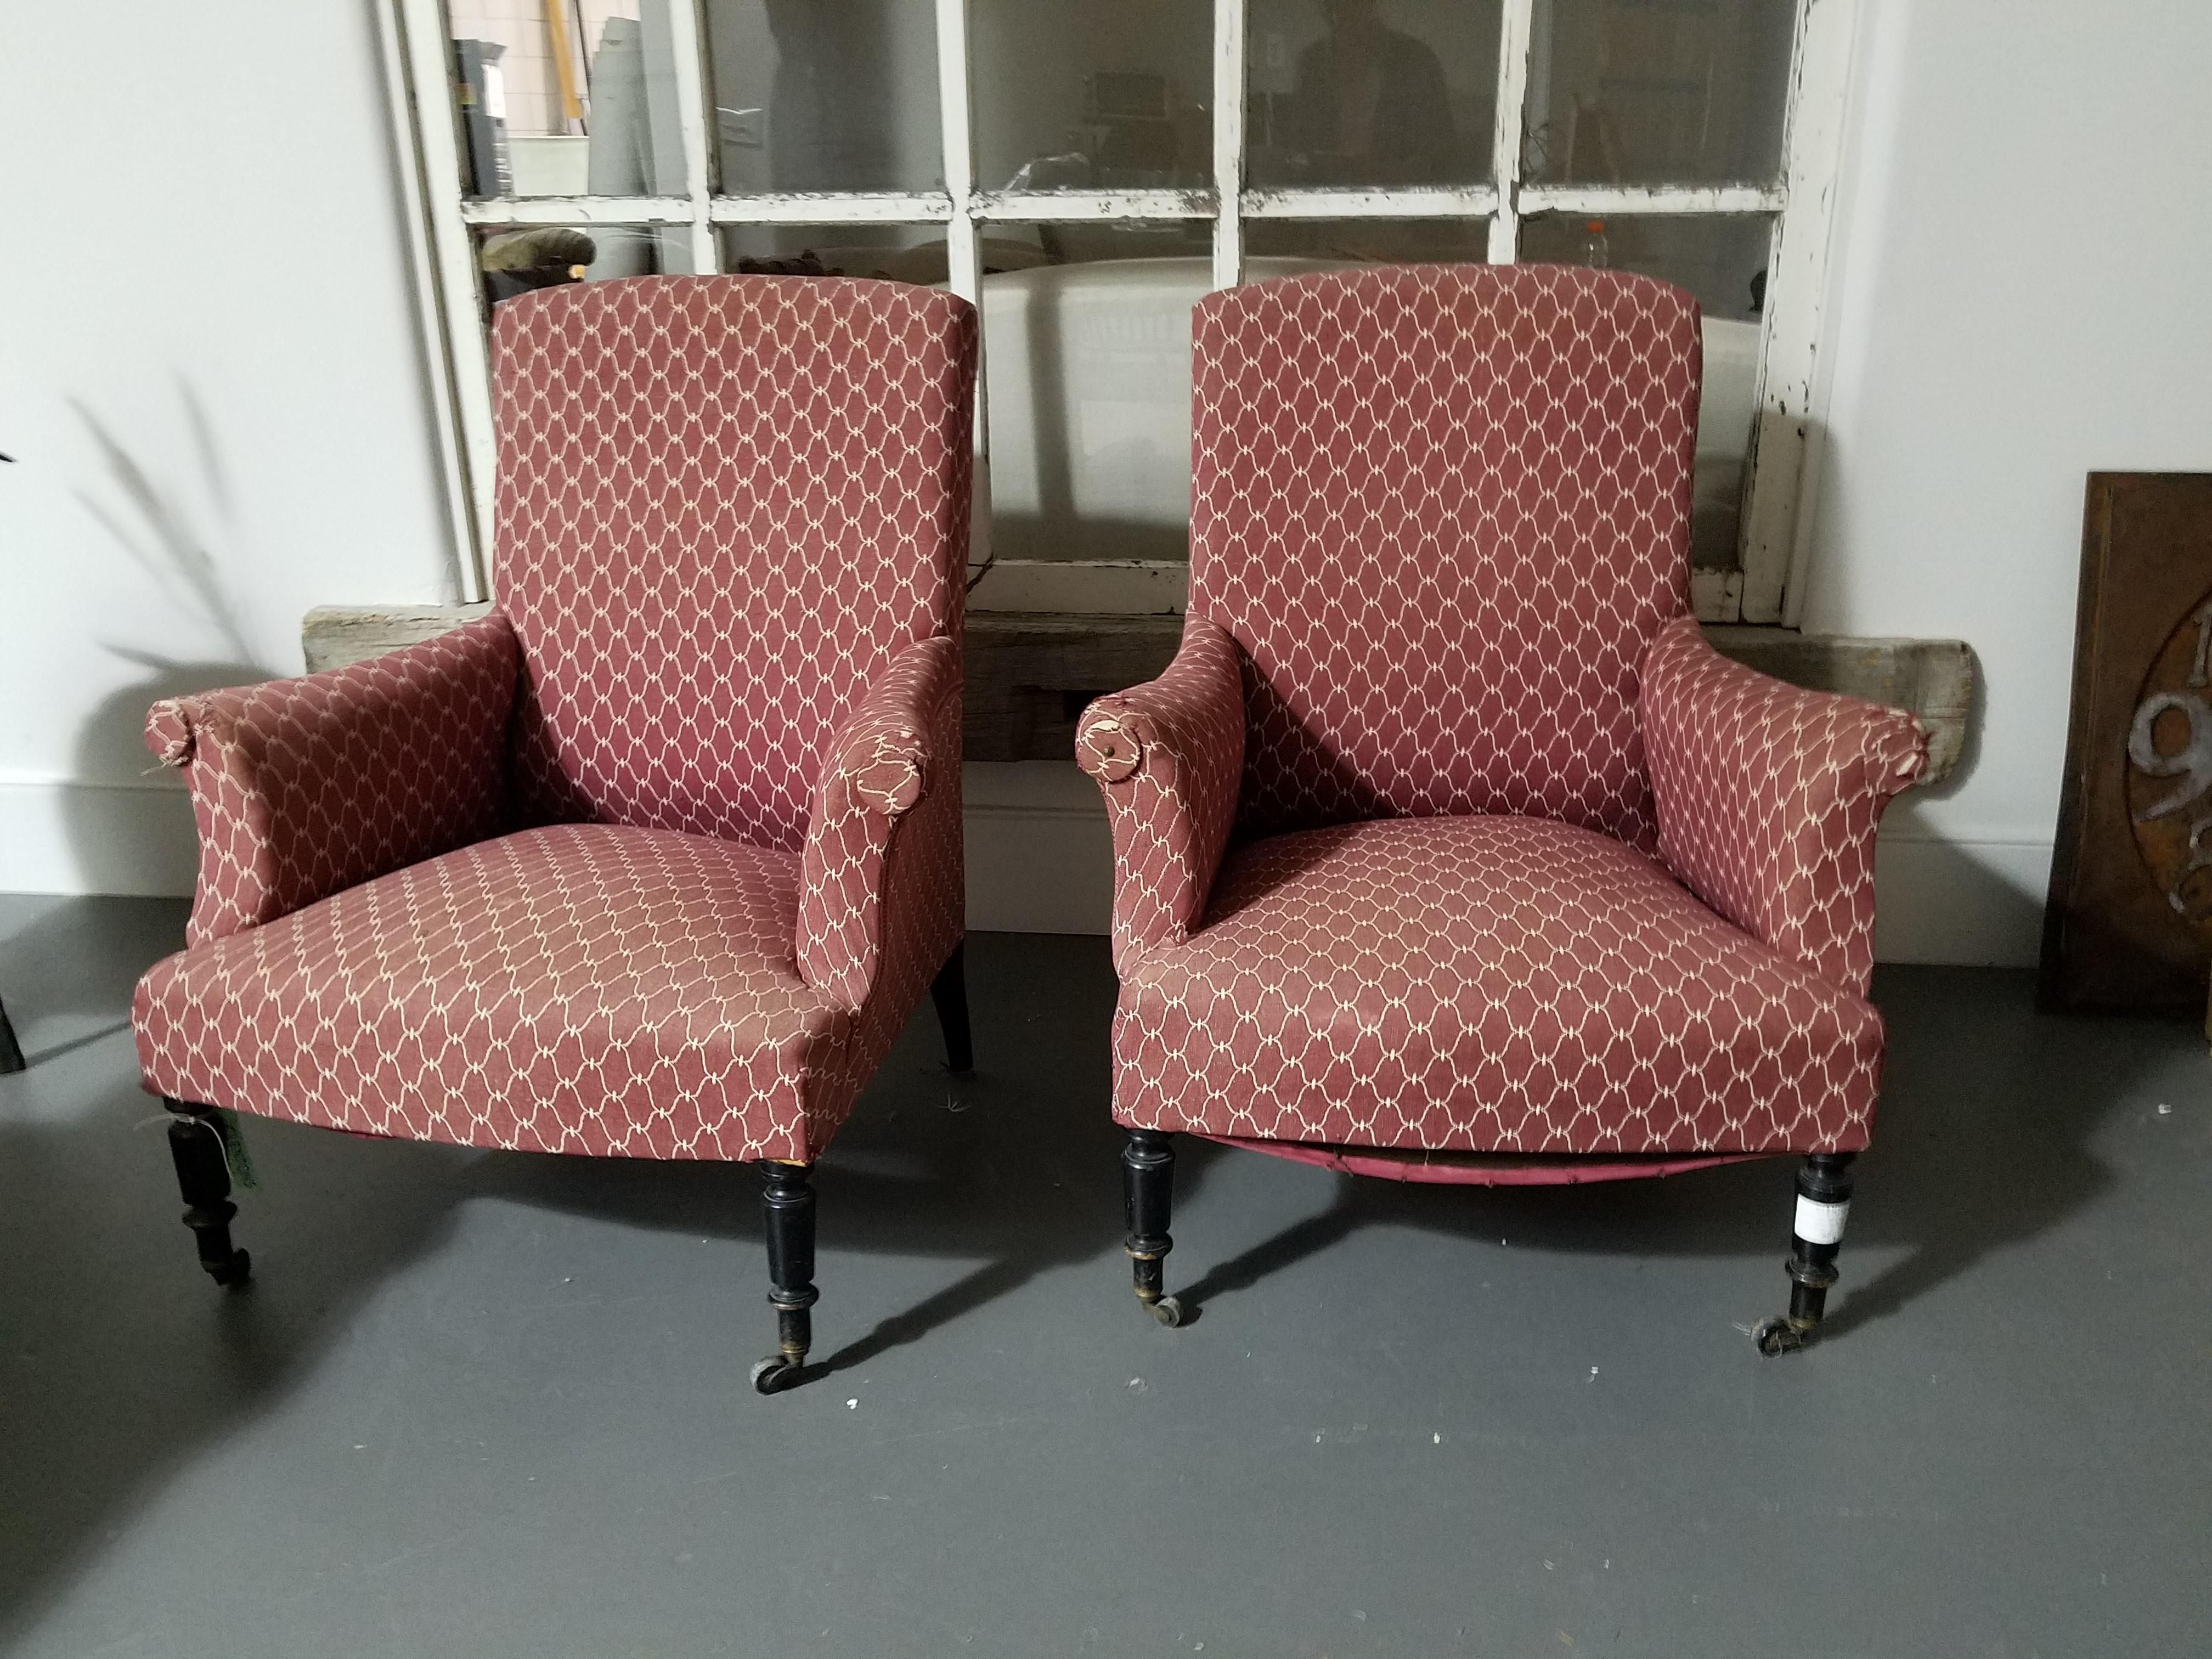 Captivating Antique Patterned Club Chairs   A Pair   Image 5 Of 5